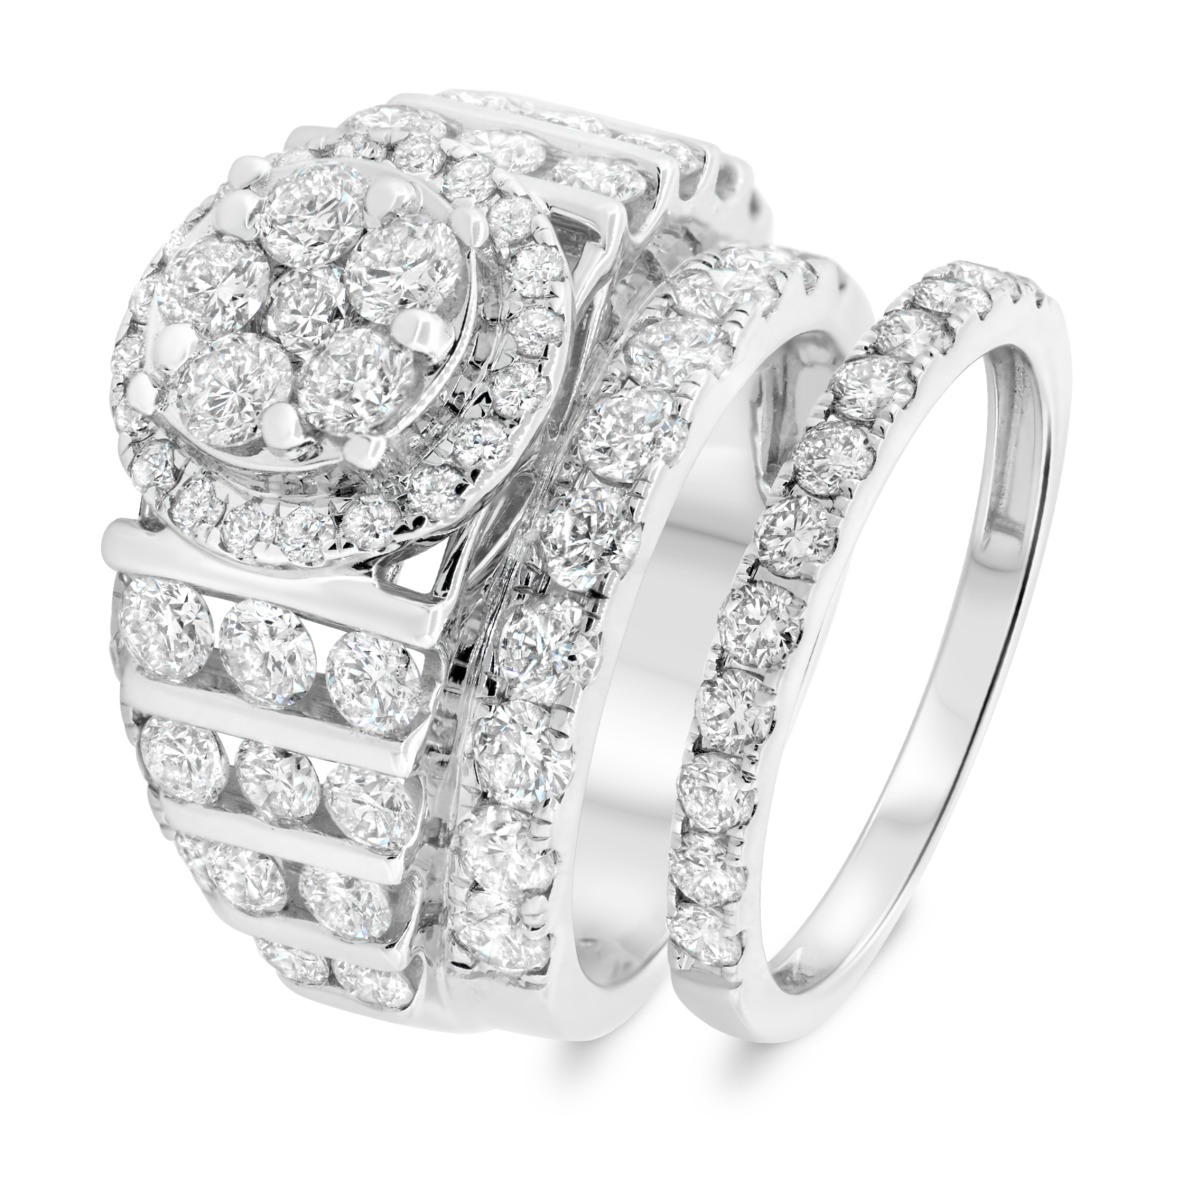 4 1/2 CT. T.W. Diamond Matching Bridal Ring Set 10K White Gold